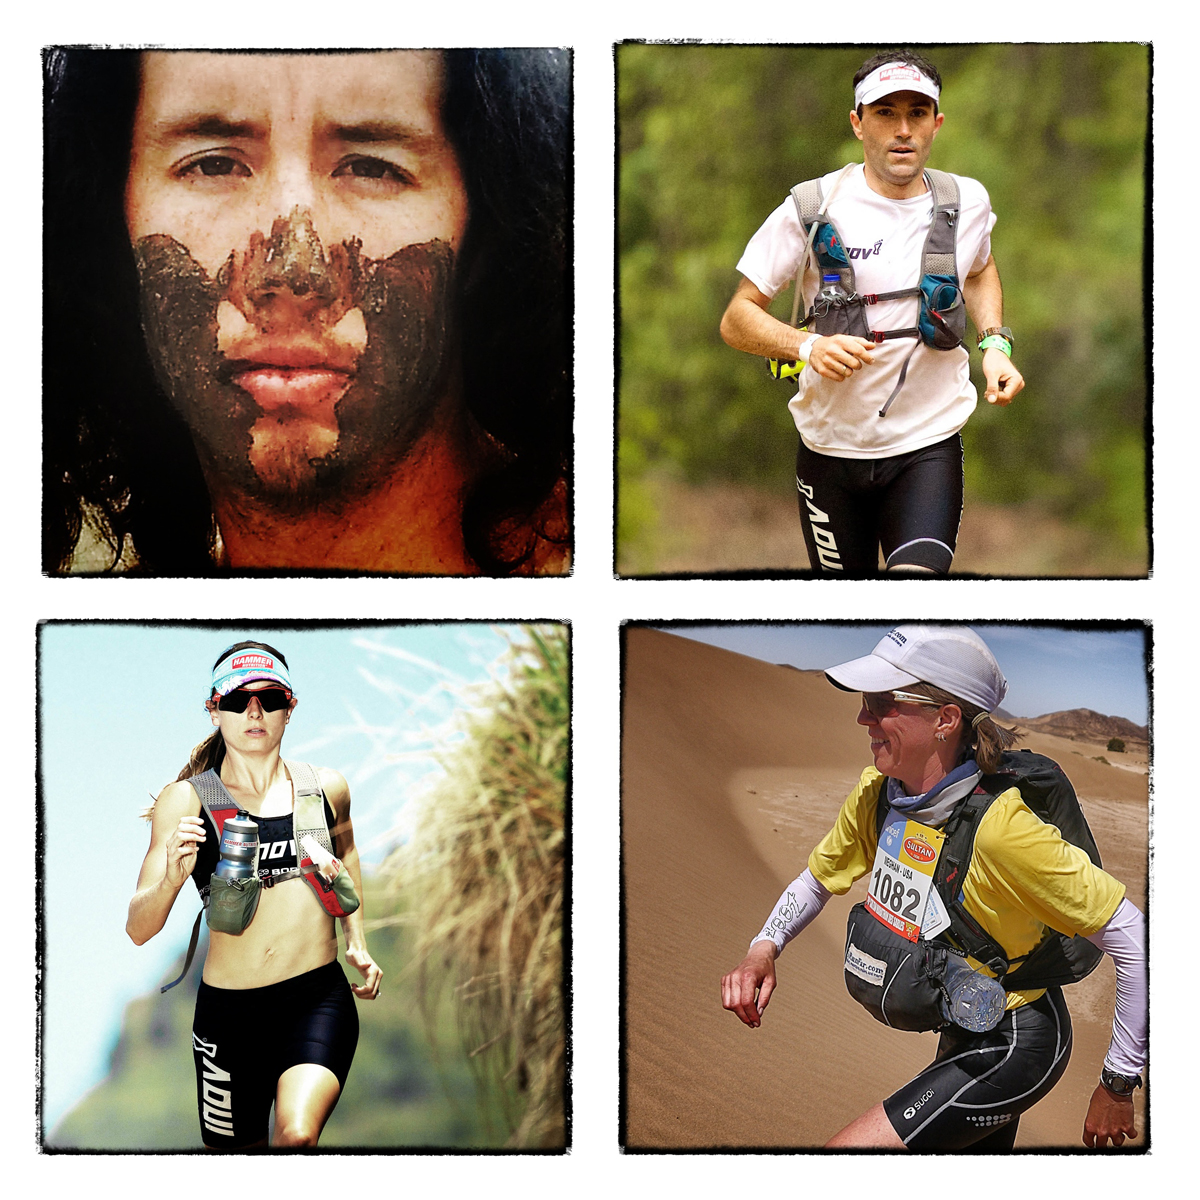 meghan hicks iancorless com photography writing talk ultra on this weeks show we speak to 22 year old nick hollon who just recently finished the infamous barkley marathon we catch up natalie white who tells us